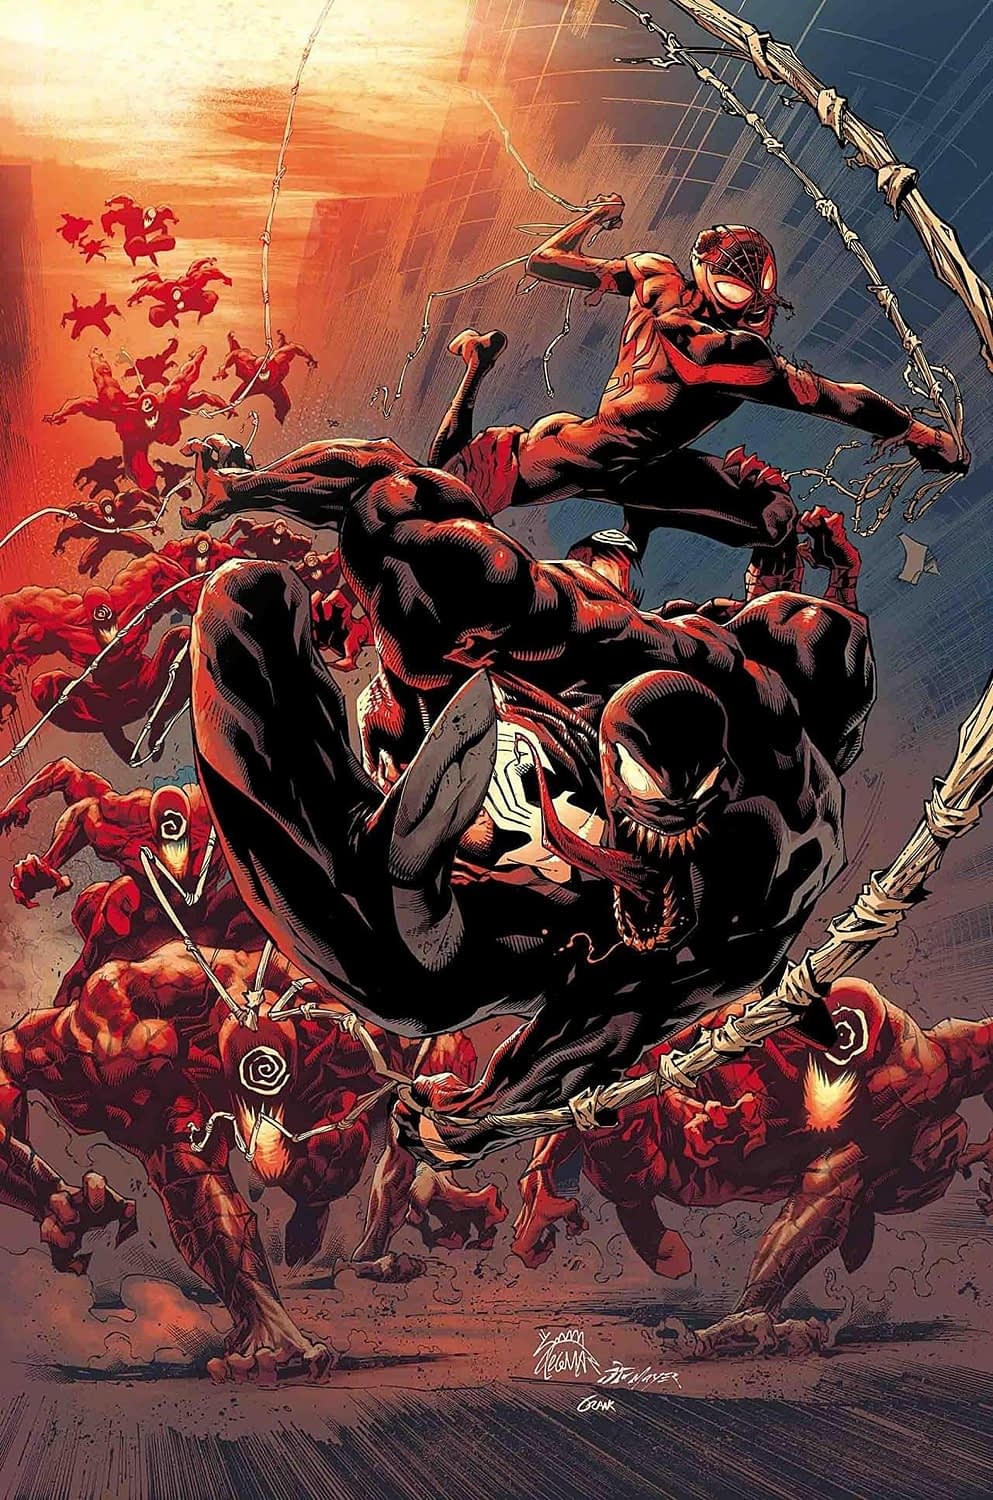 Marvel Adds an Extra Issue to Absolute Carnage